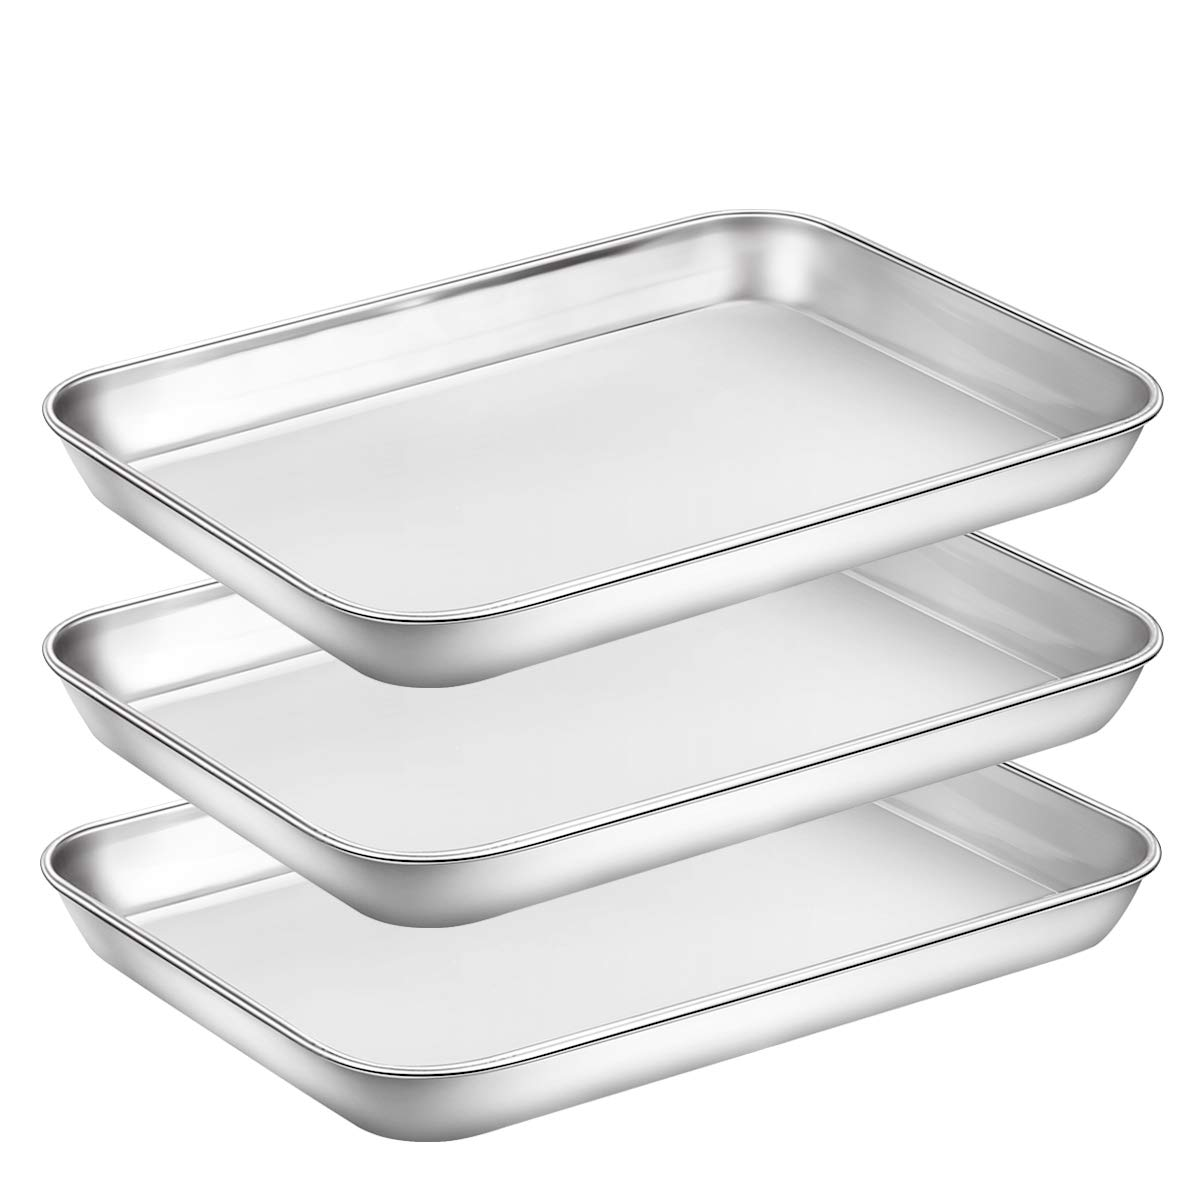 Baking Sheet Pan for Toaster Oven, Stainless Steel Baking Pans Small Metal Cookie Sheets by Umite Chef, Superior Mirror Finish Easy Clean, Dishwasher Safe, 9 x 7 x 1 inch, 3 Piece/set … by Umite Chef